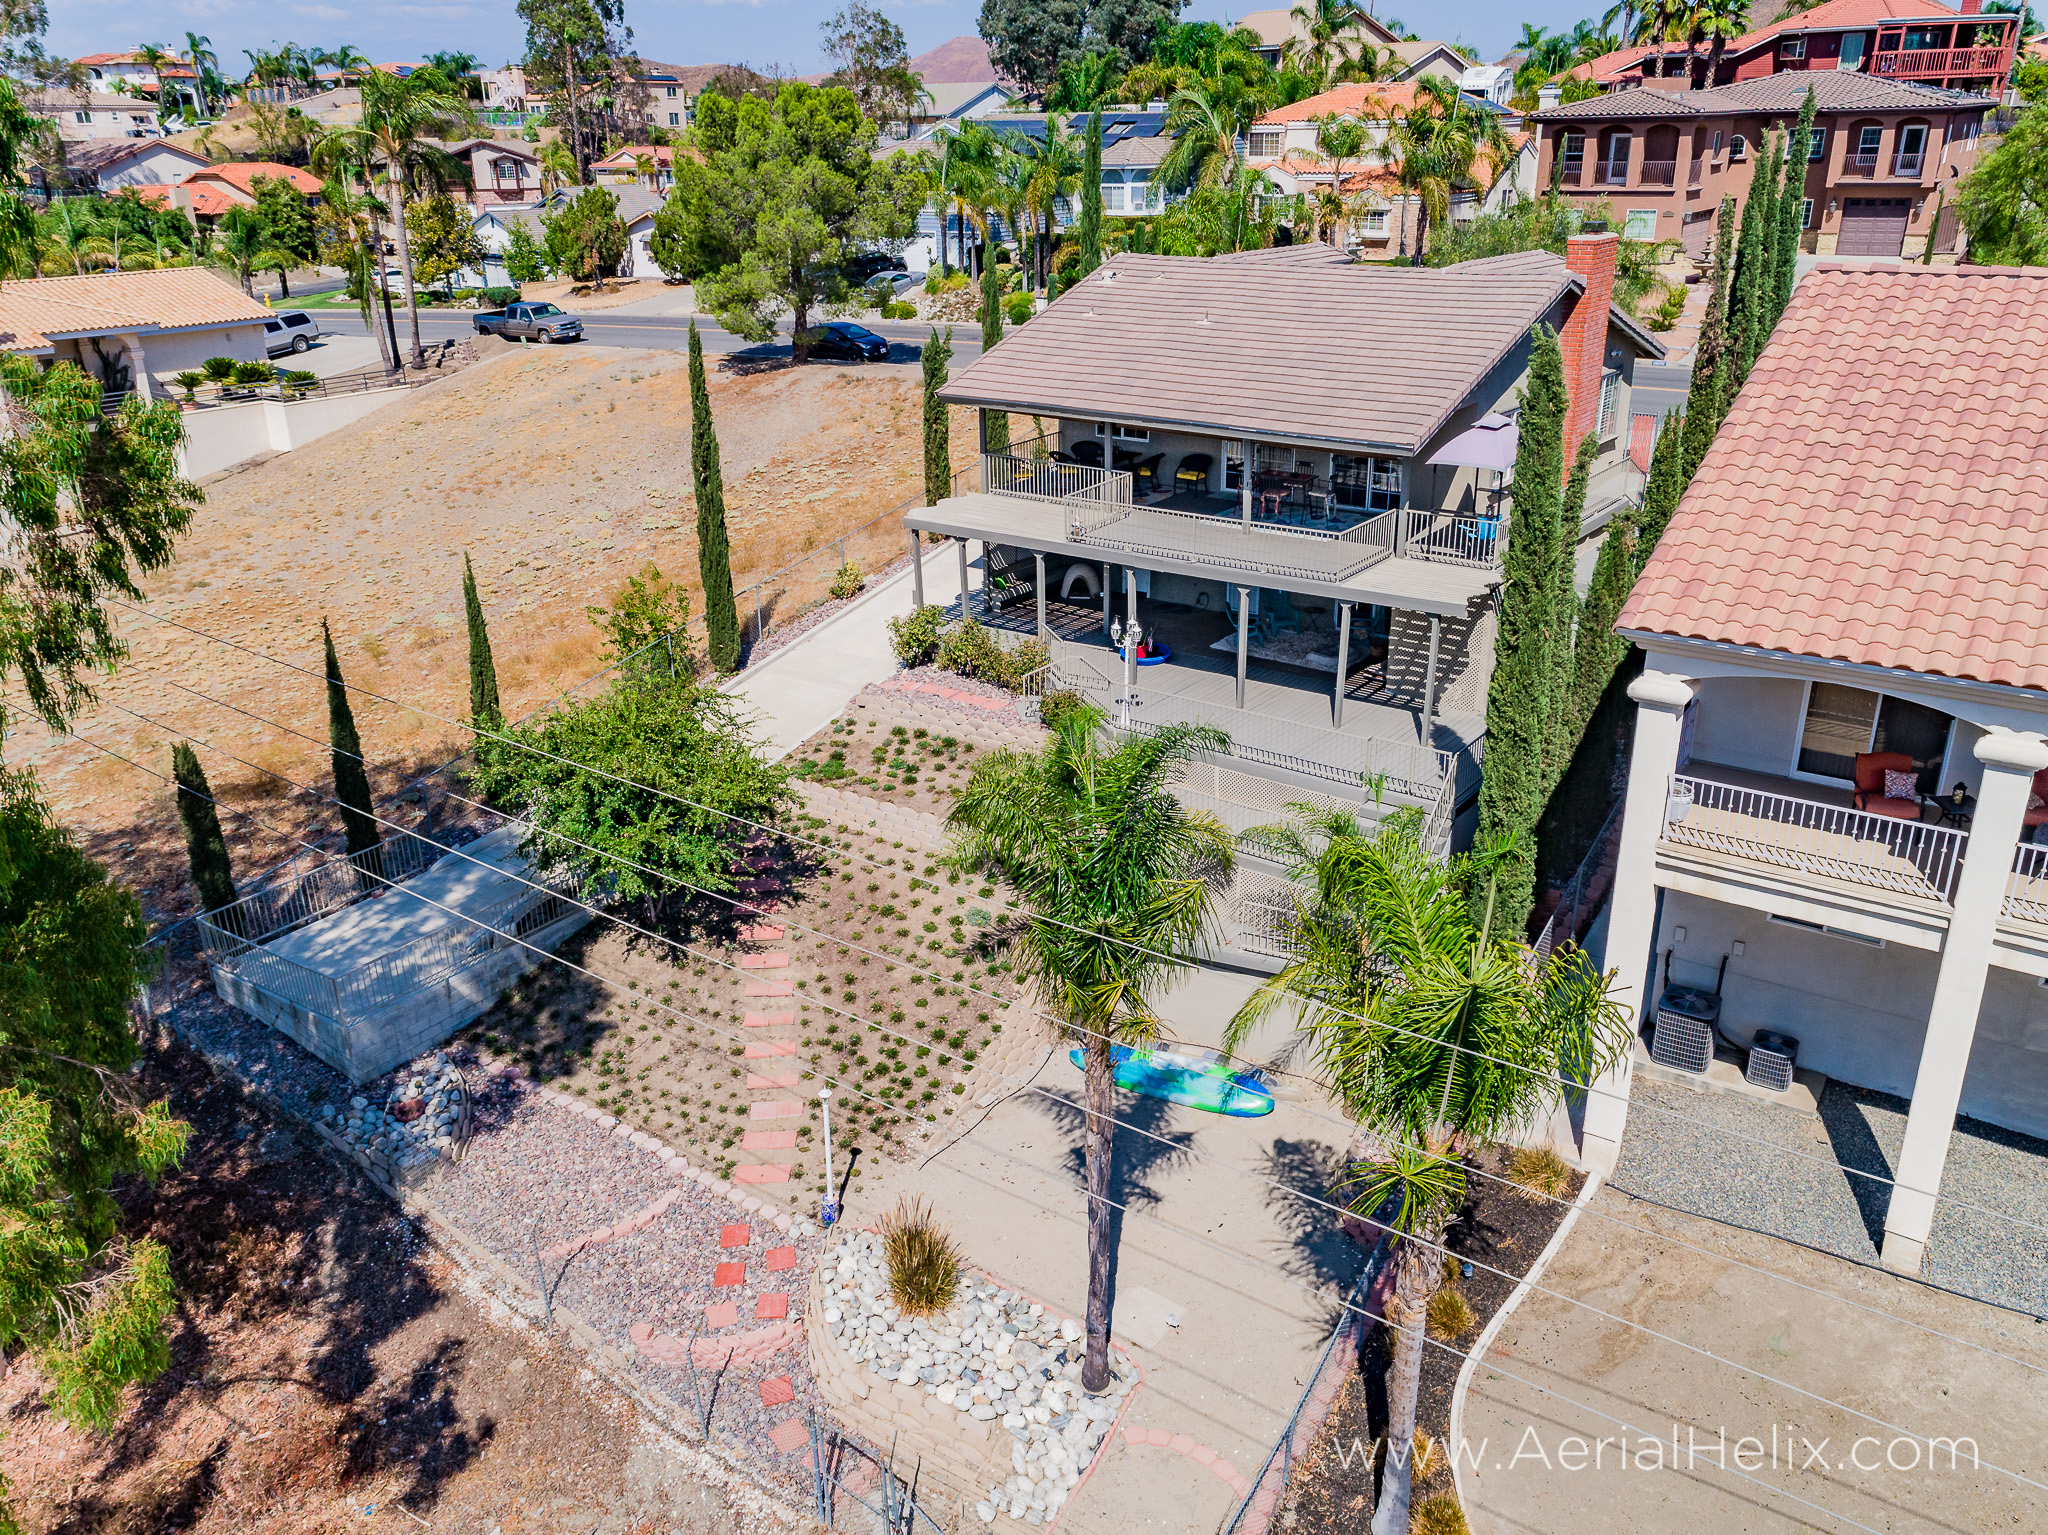 Longhorn Dr - HELIX Aerial Real Estate Photographer-14.jpg